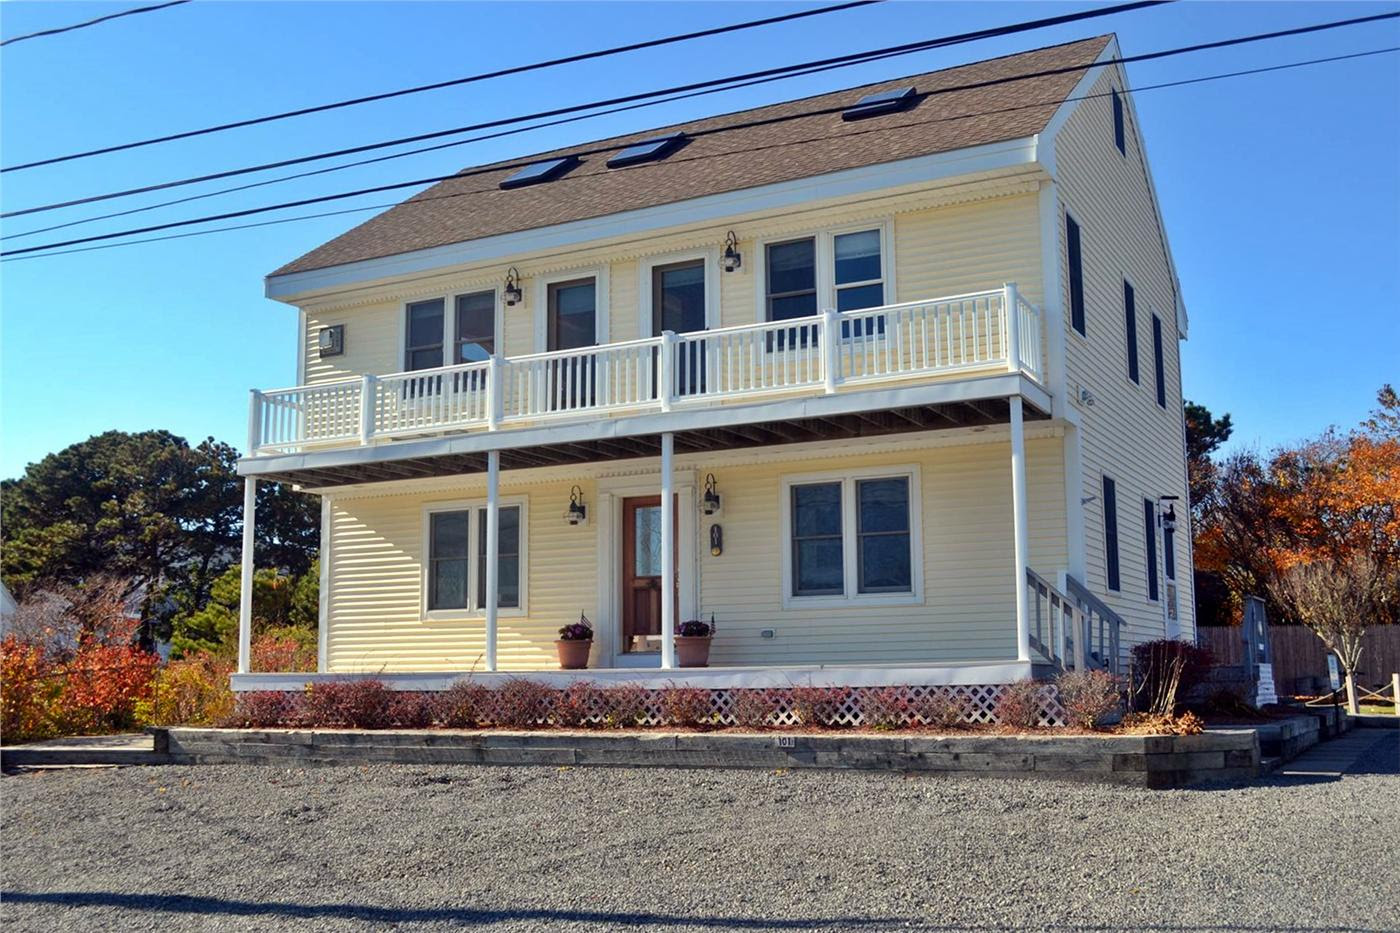 Dennis Vacation Rental home in Cape Cod MA 02639 Two